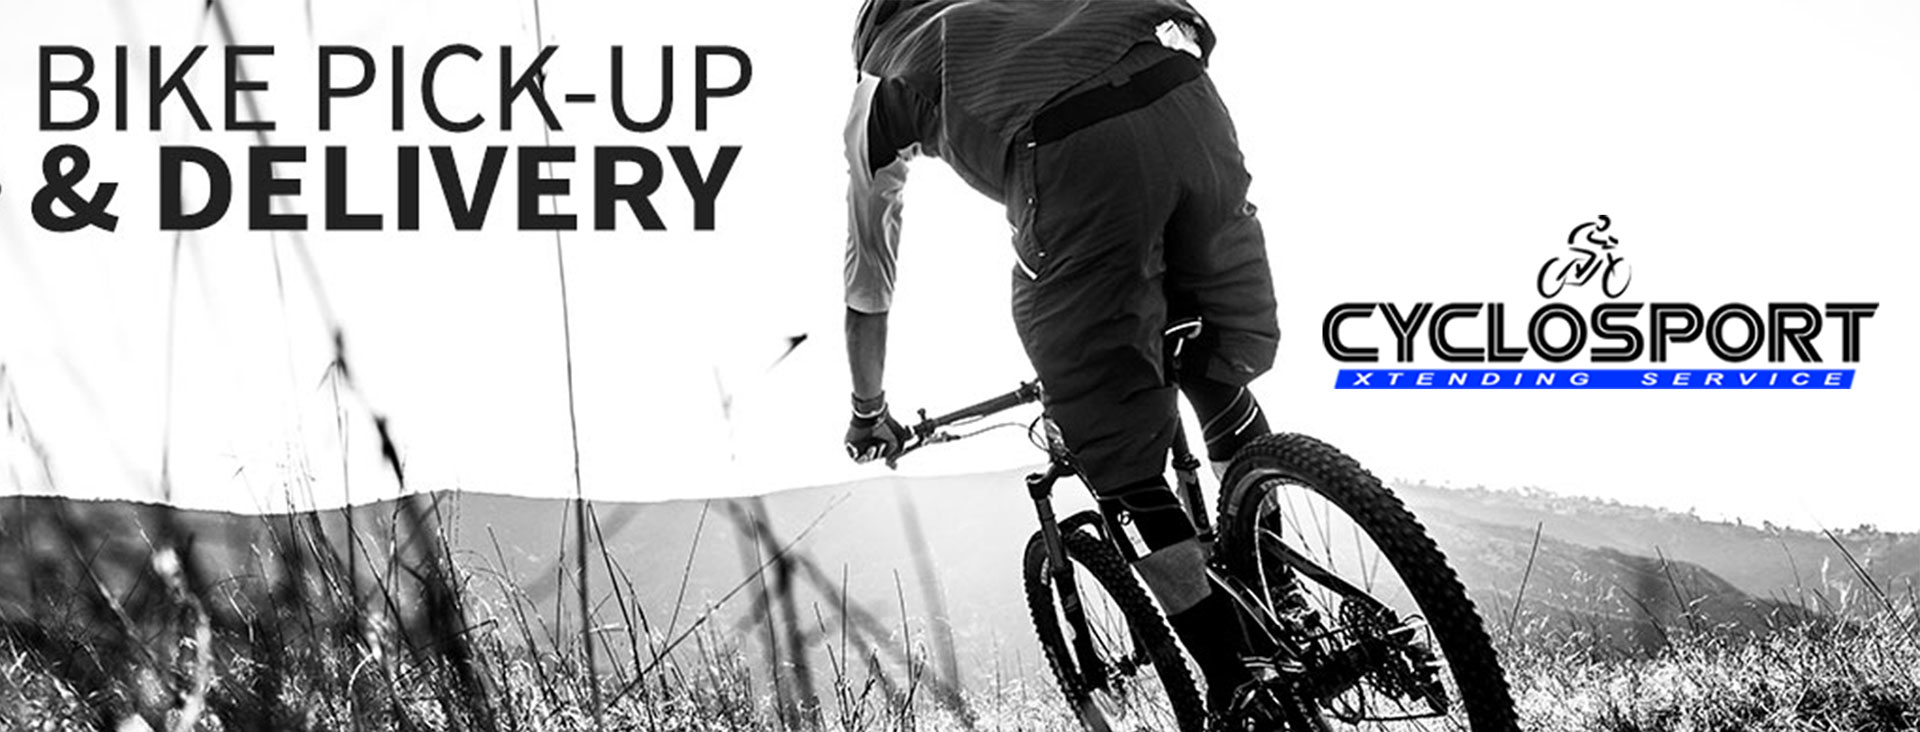 Collection and delivery options available when servicing your bicycle with Cyclosport Cape Town